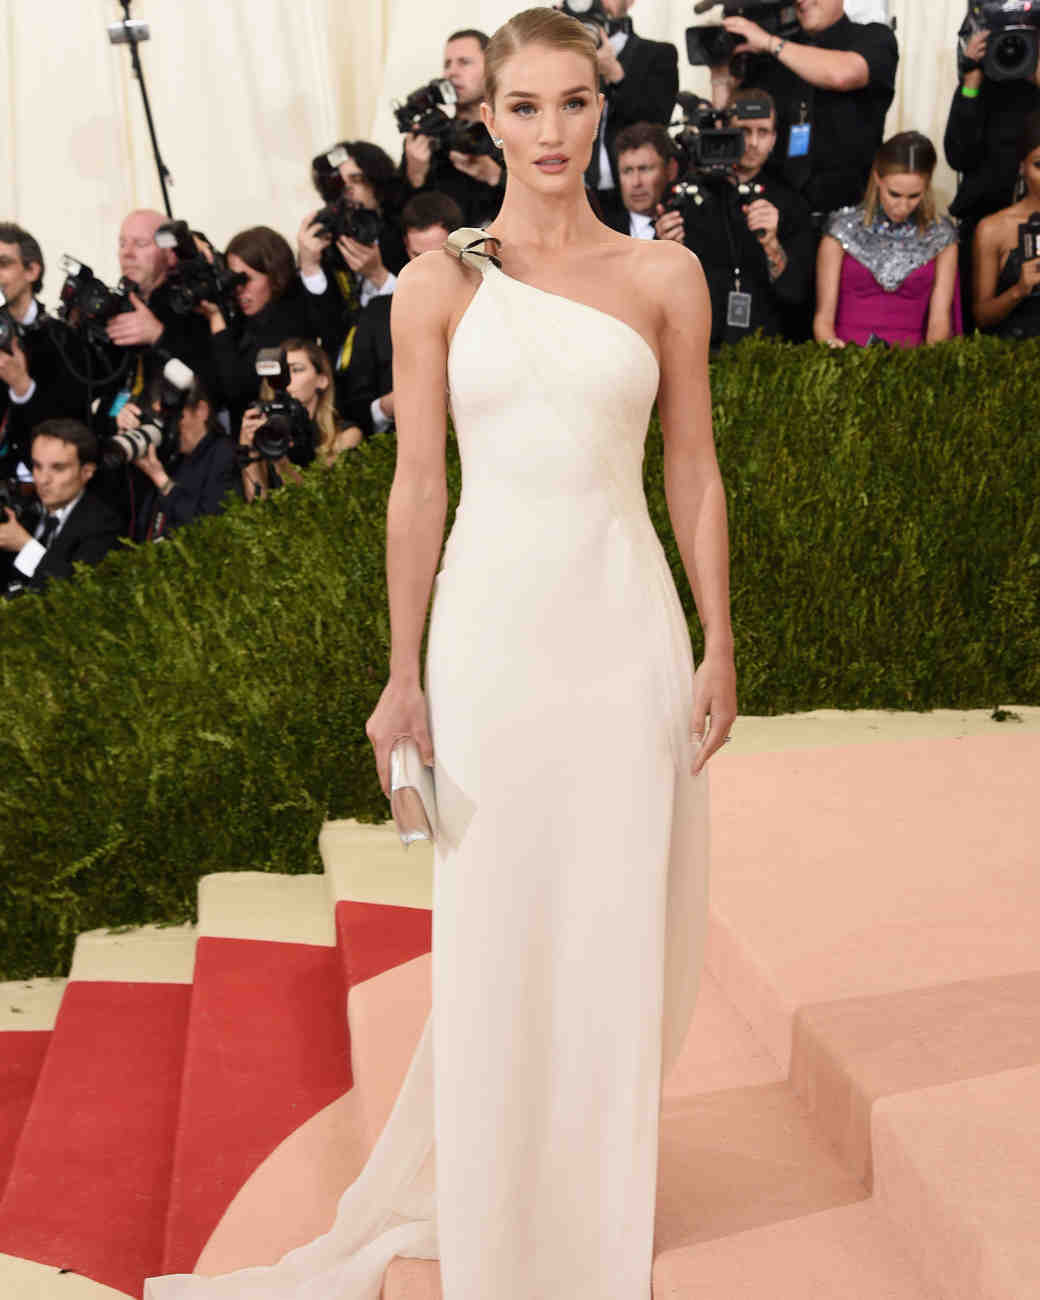 met-gala-2016-rosie-huntington-whiteley-0516.jpg